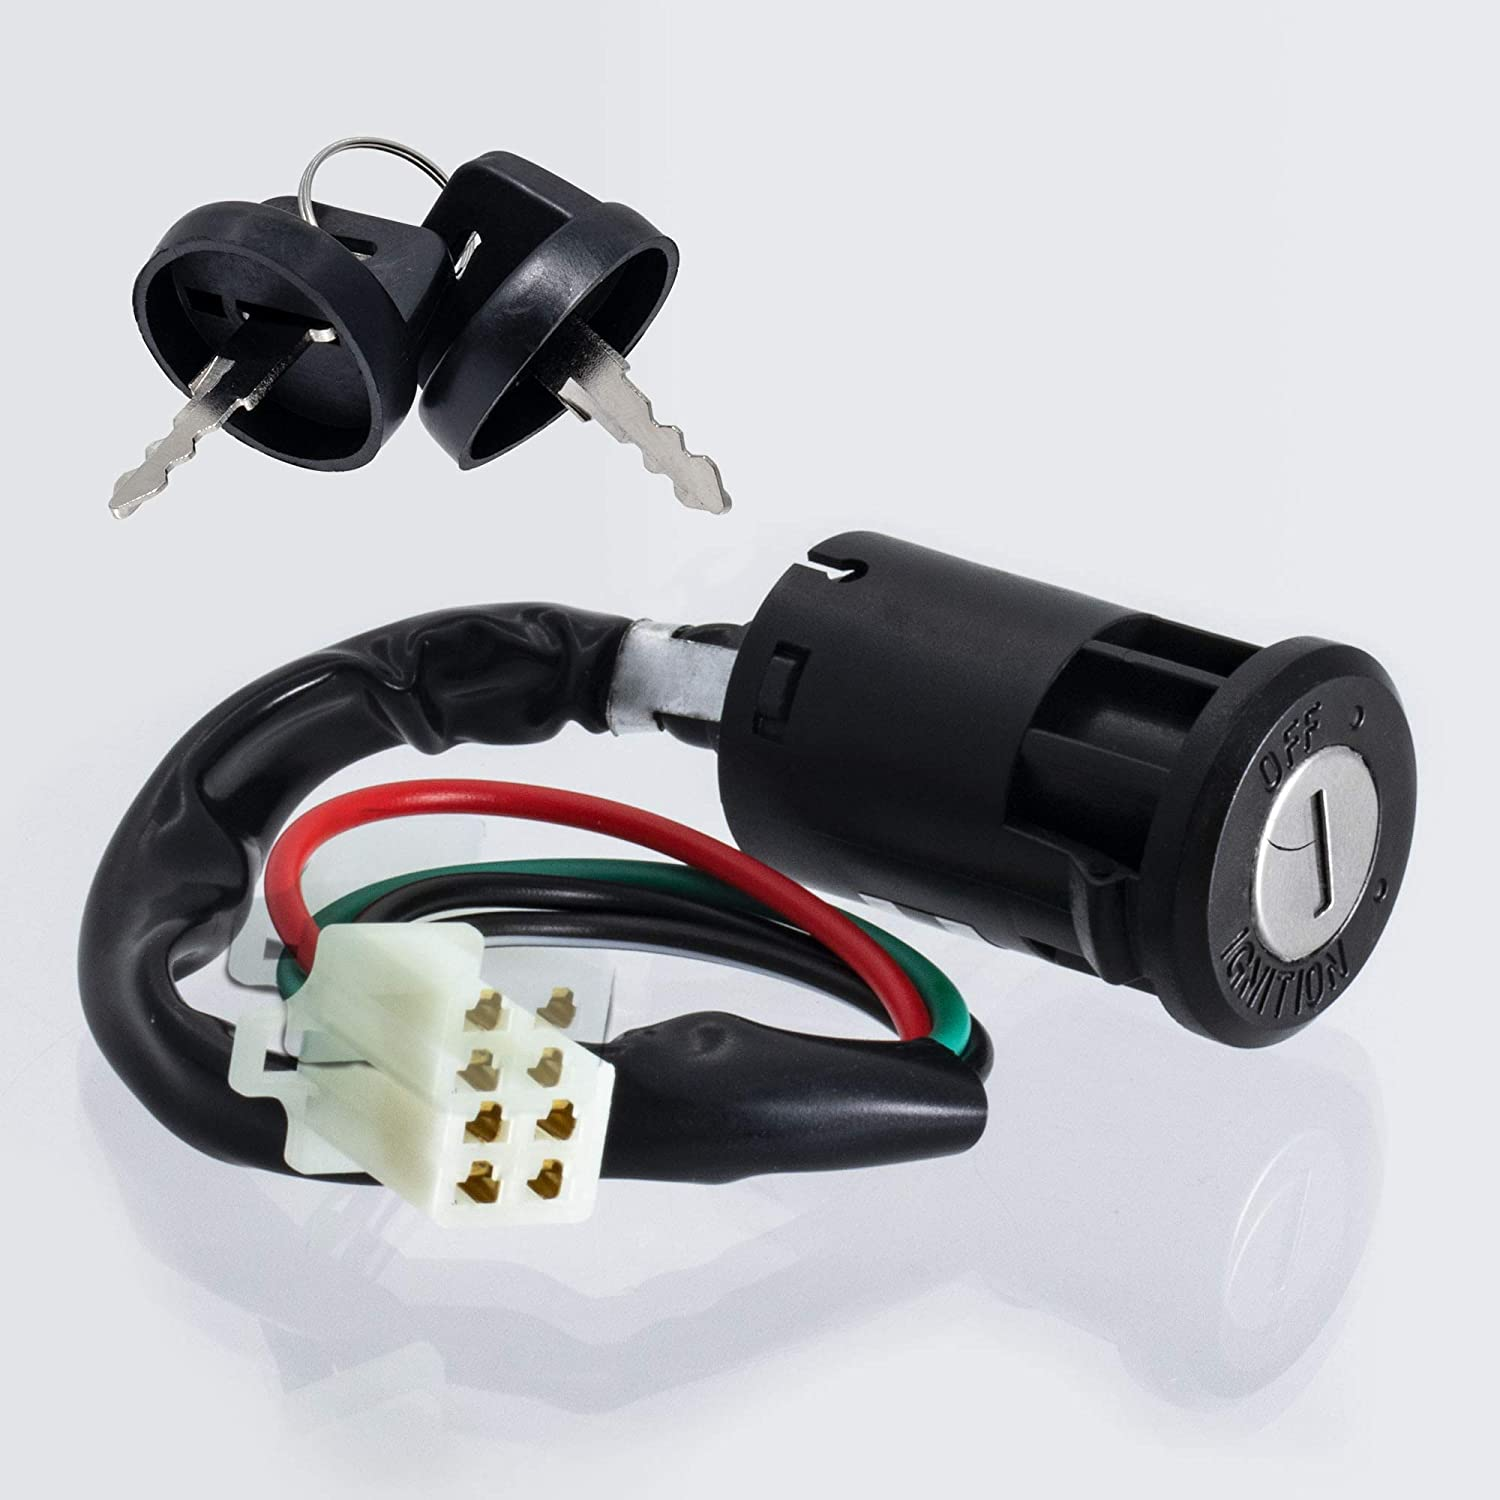 Minireen 4 Wires Ignition Switch Key Set with Cap for 50cc 70cc 90cc 110cc 125cc 150cc 200cc 250cc TaoTao SUNL ATV Dirt Bike Electric Scooter